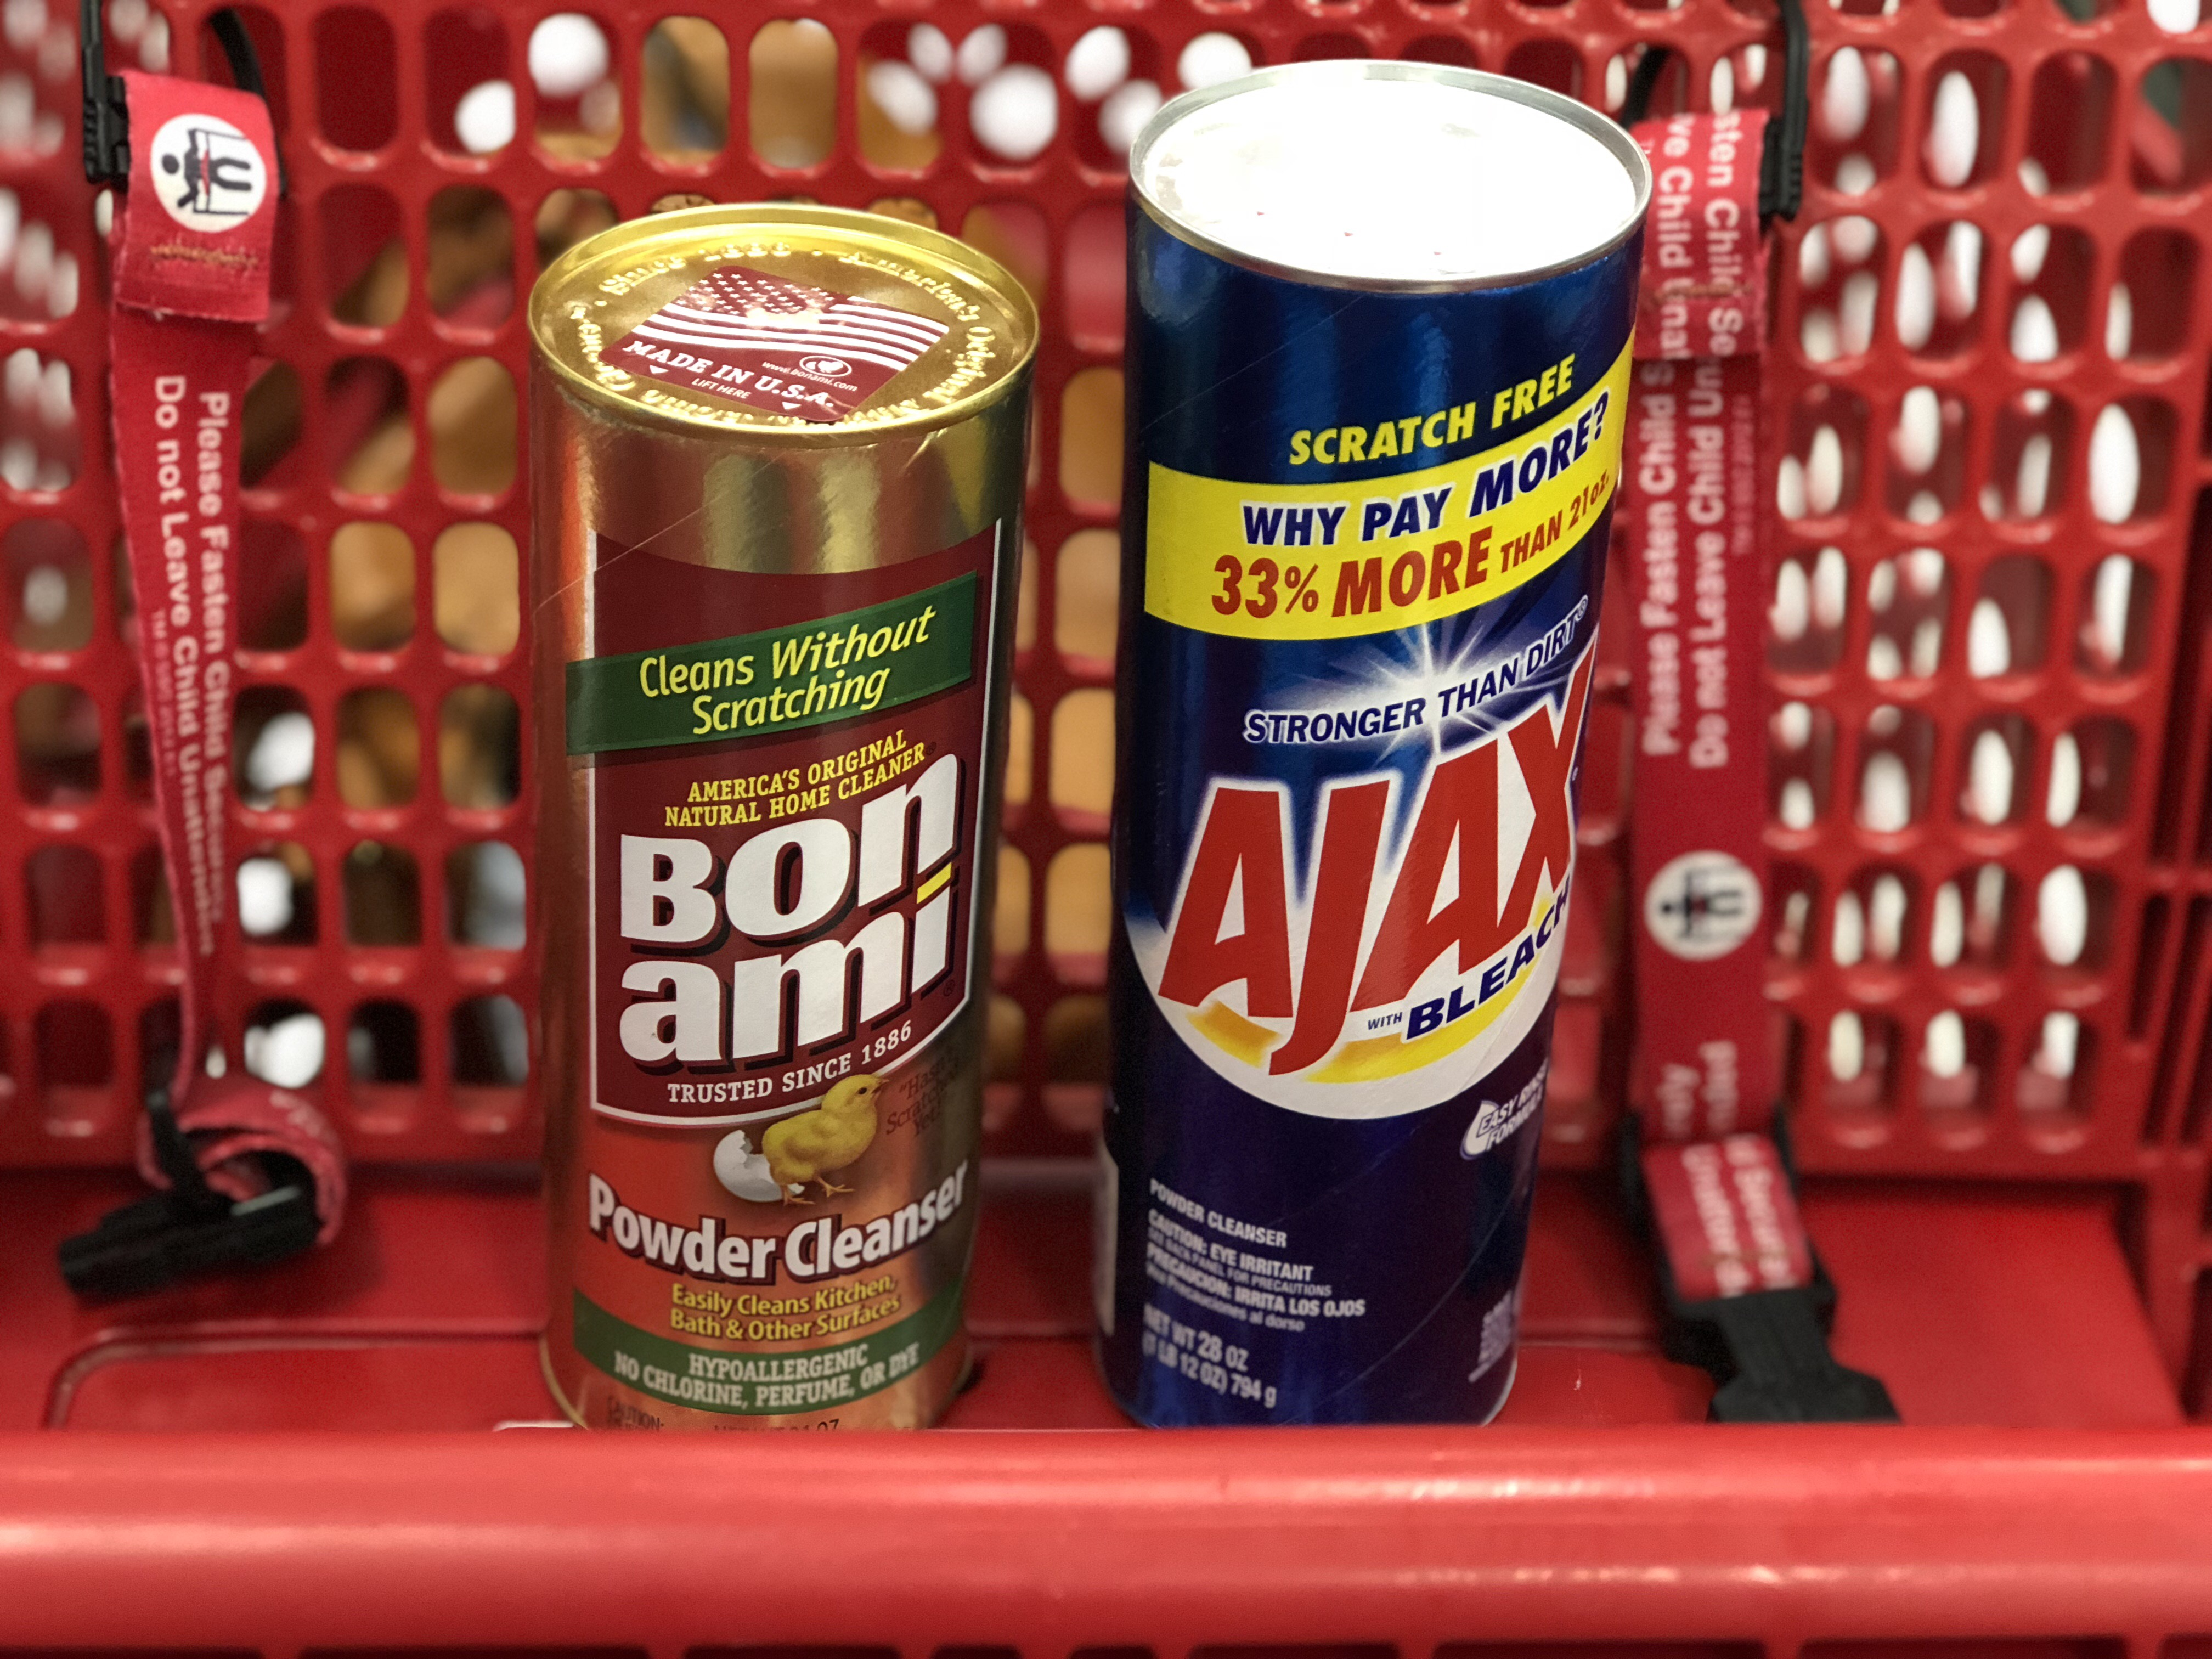 green natural eco-friendly cleaning products – scouring powders at Target – Bon Ami versus Ajax